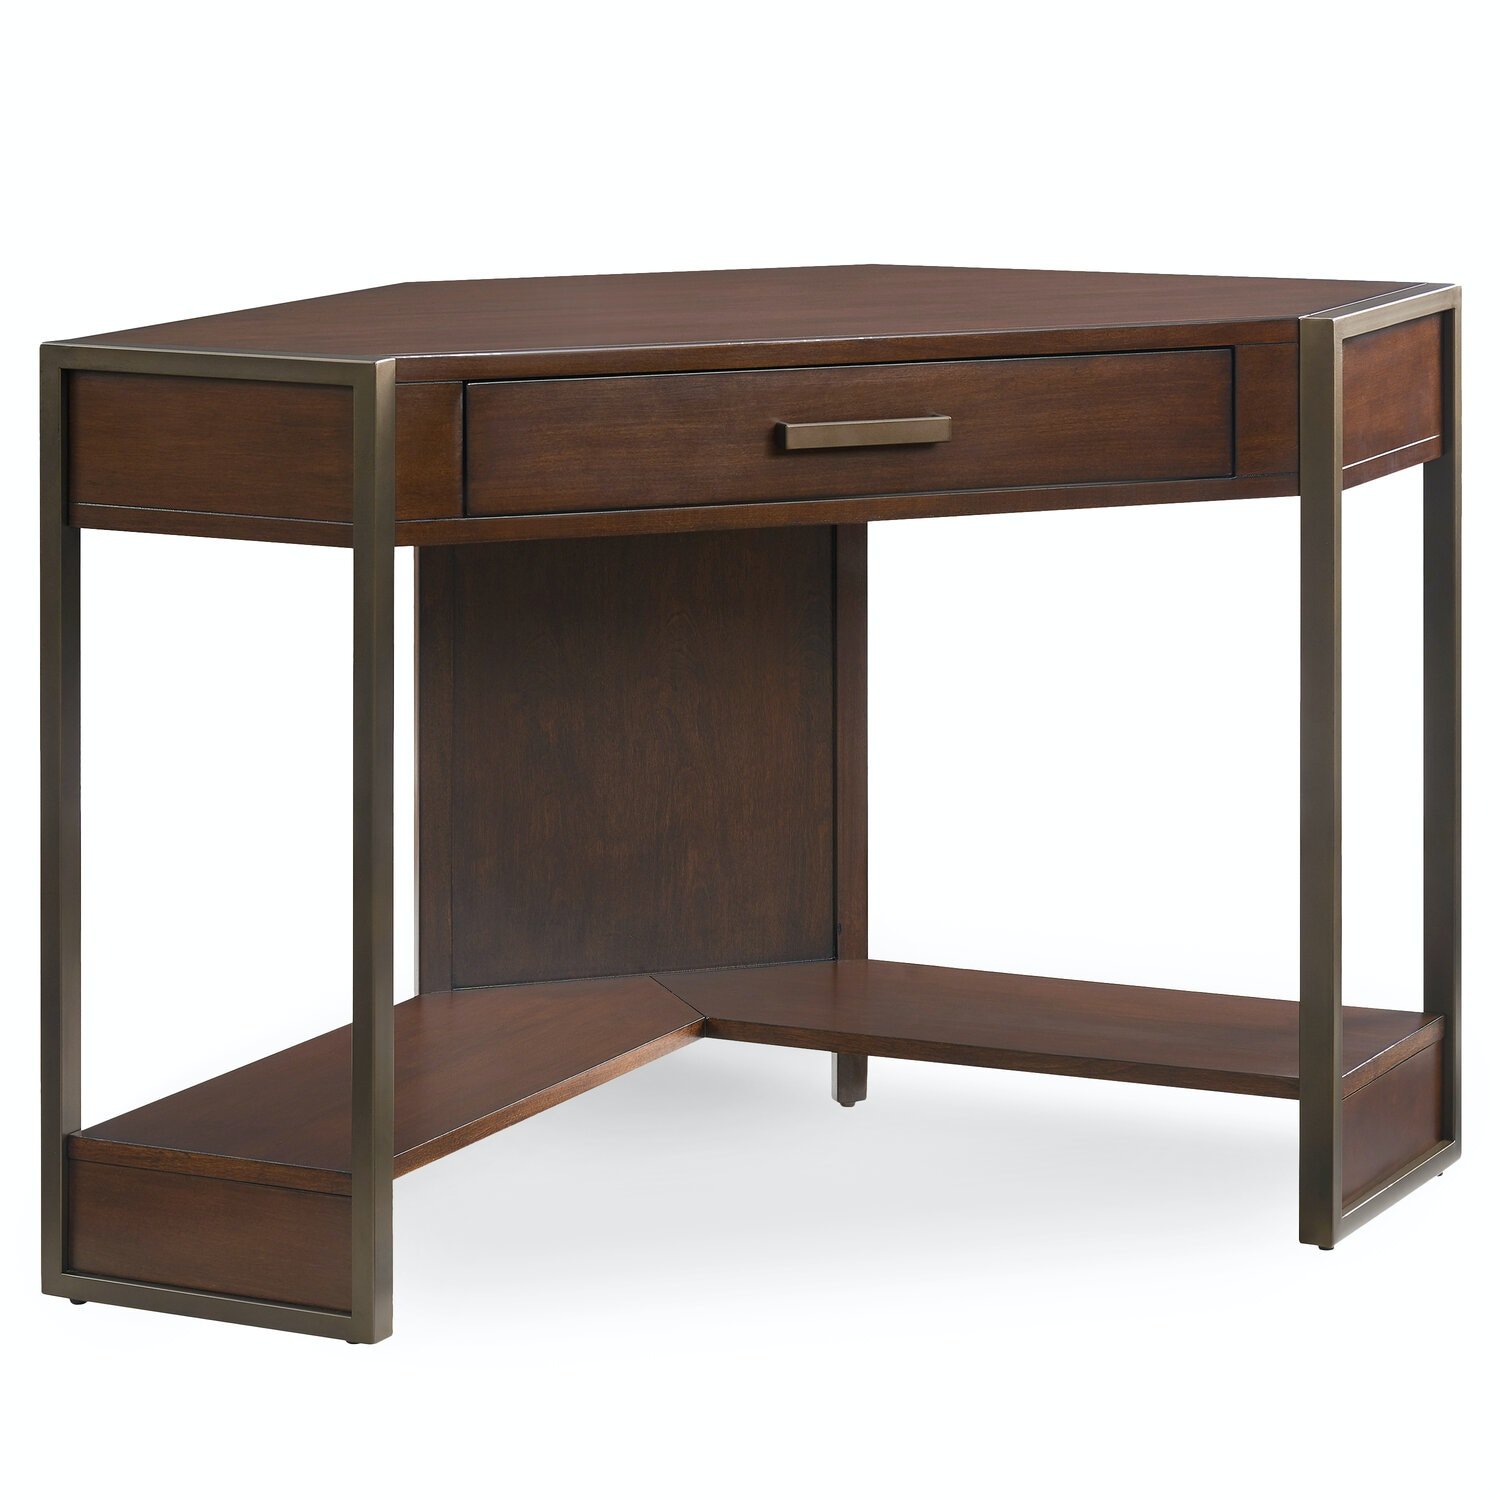 Https Www Schmittfurniture Com Leick Home Metal And Wood Corner Desk 91430 650 Iteminformation Aspx